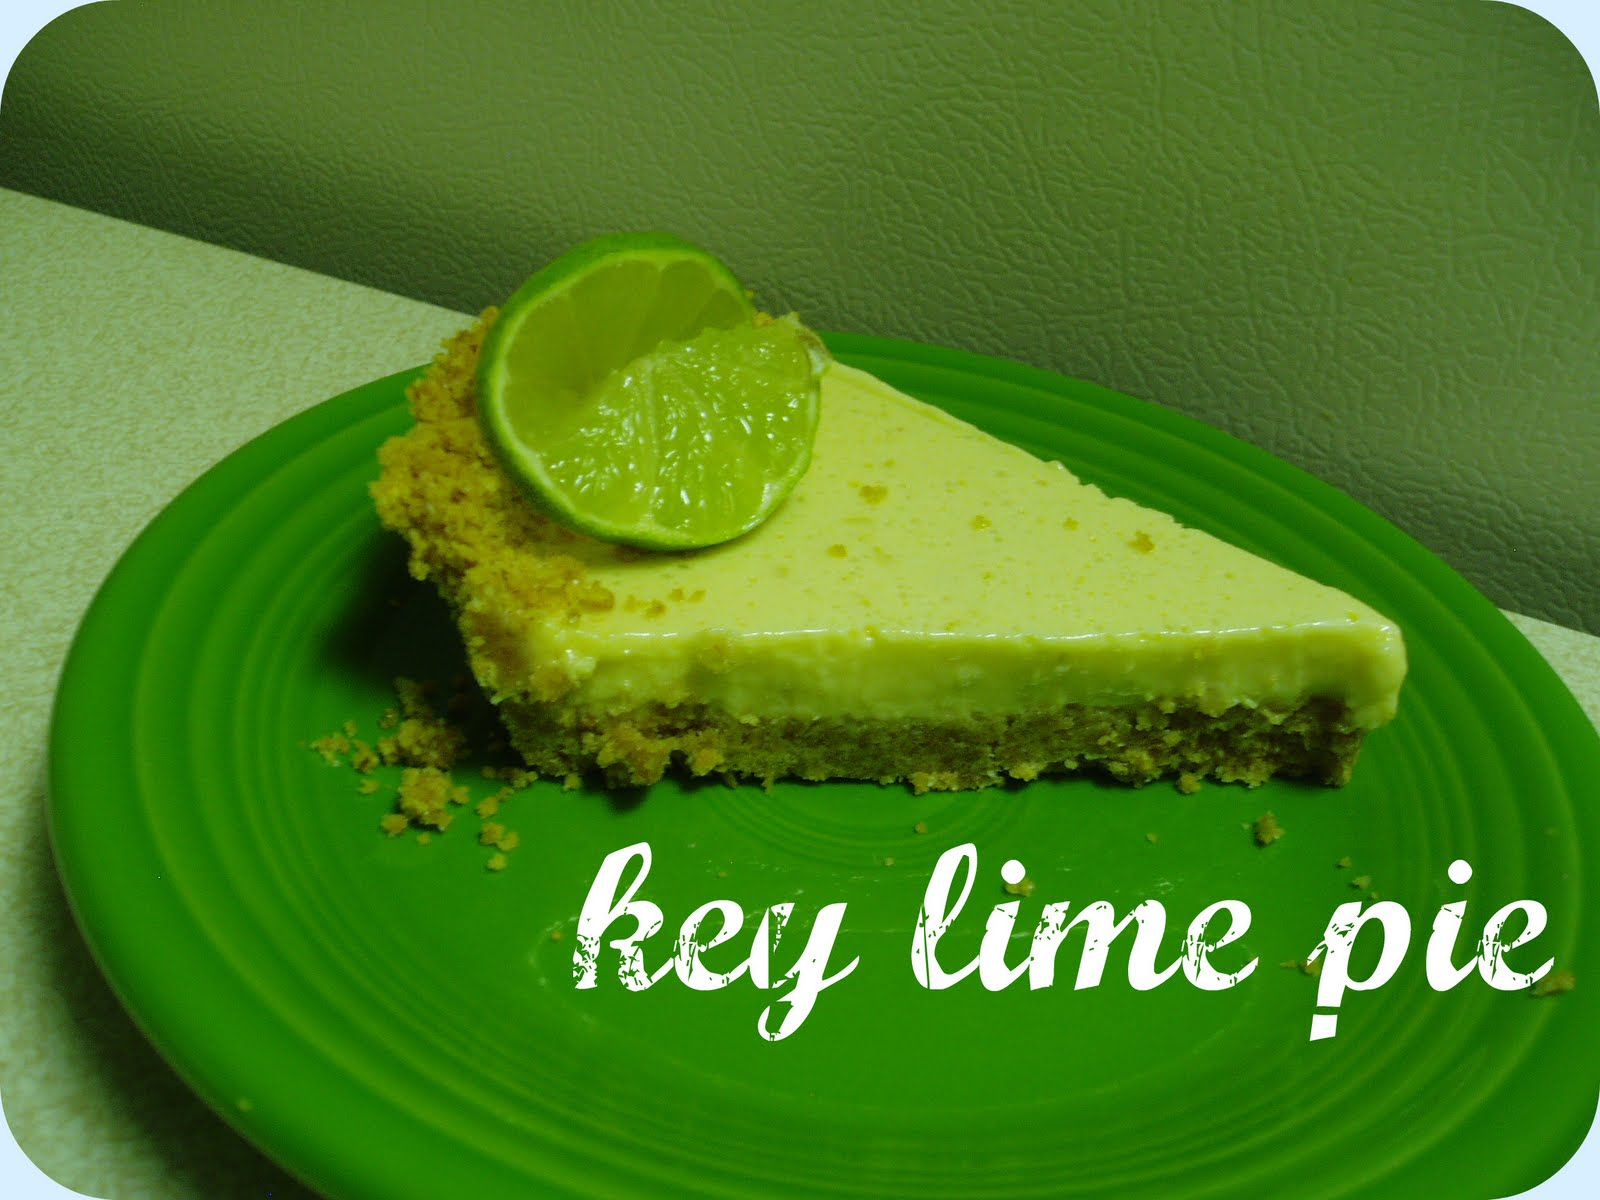 Ahh, Key Lime Pie. How do I love thee? Let me count the ways...